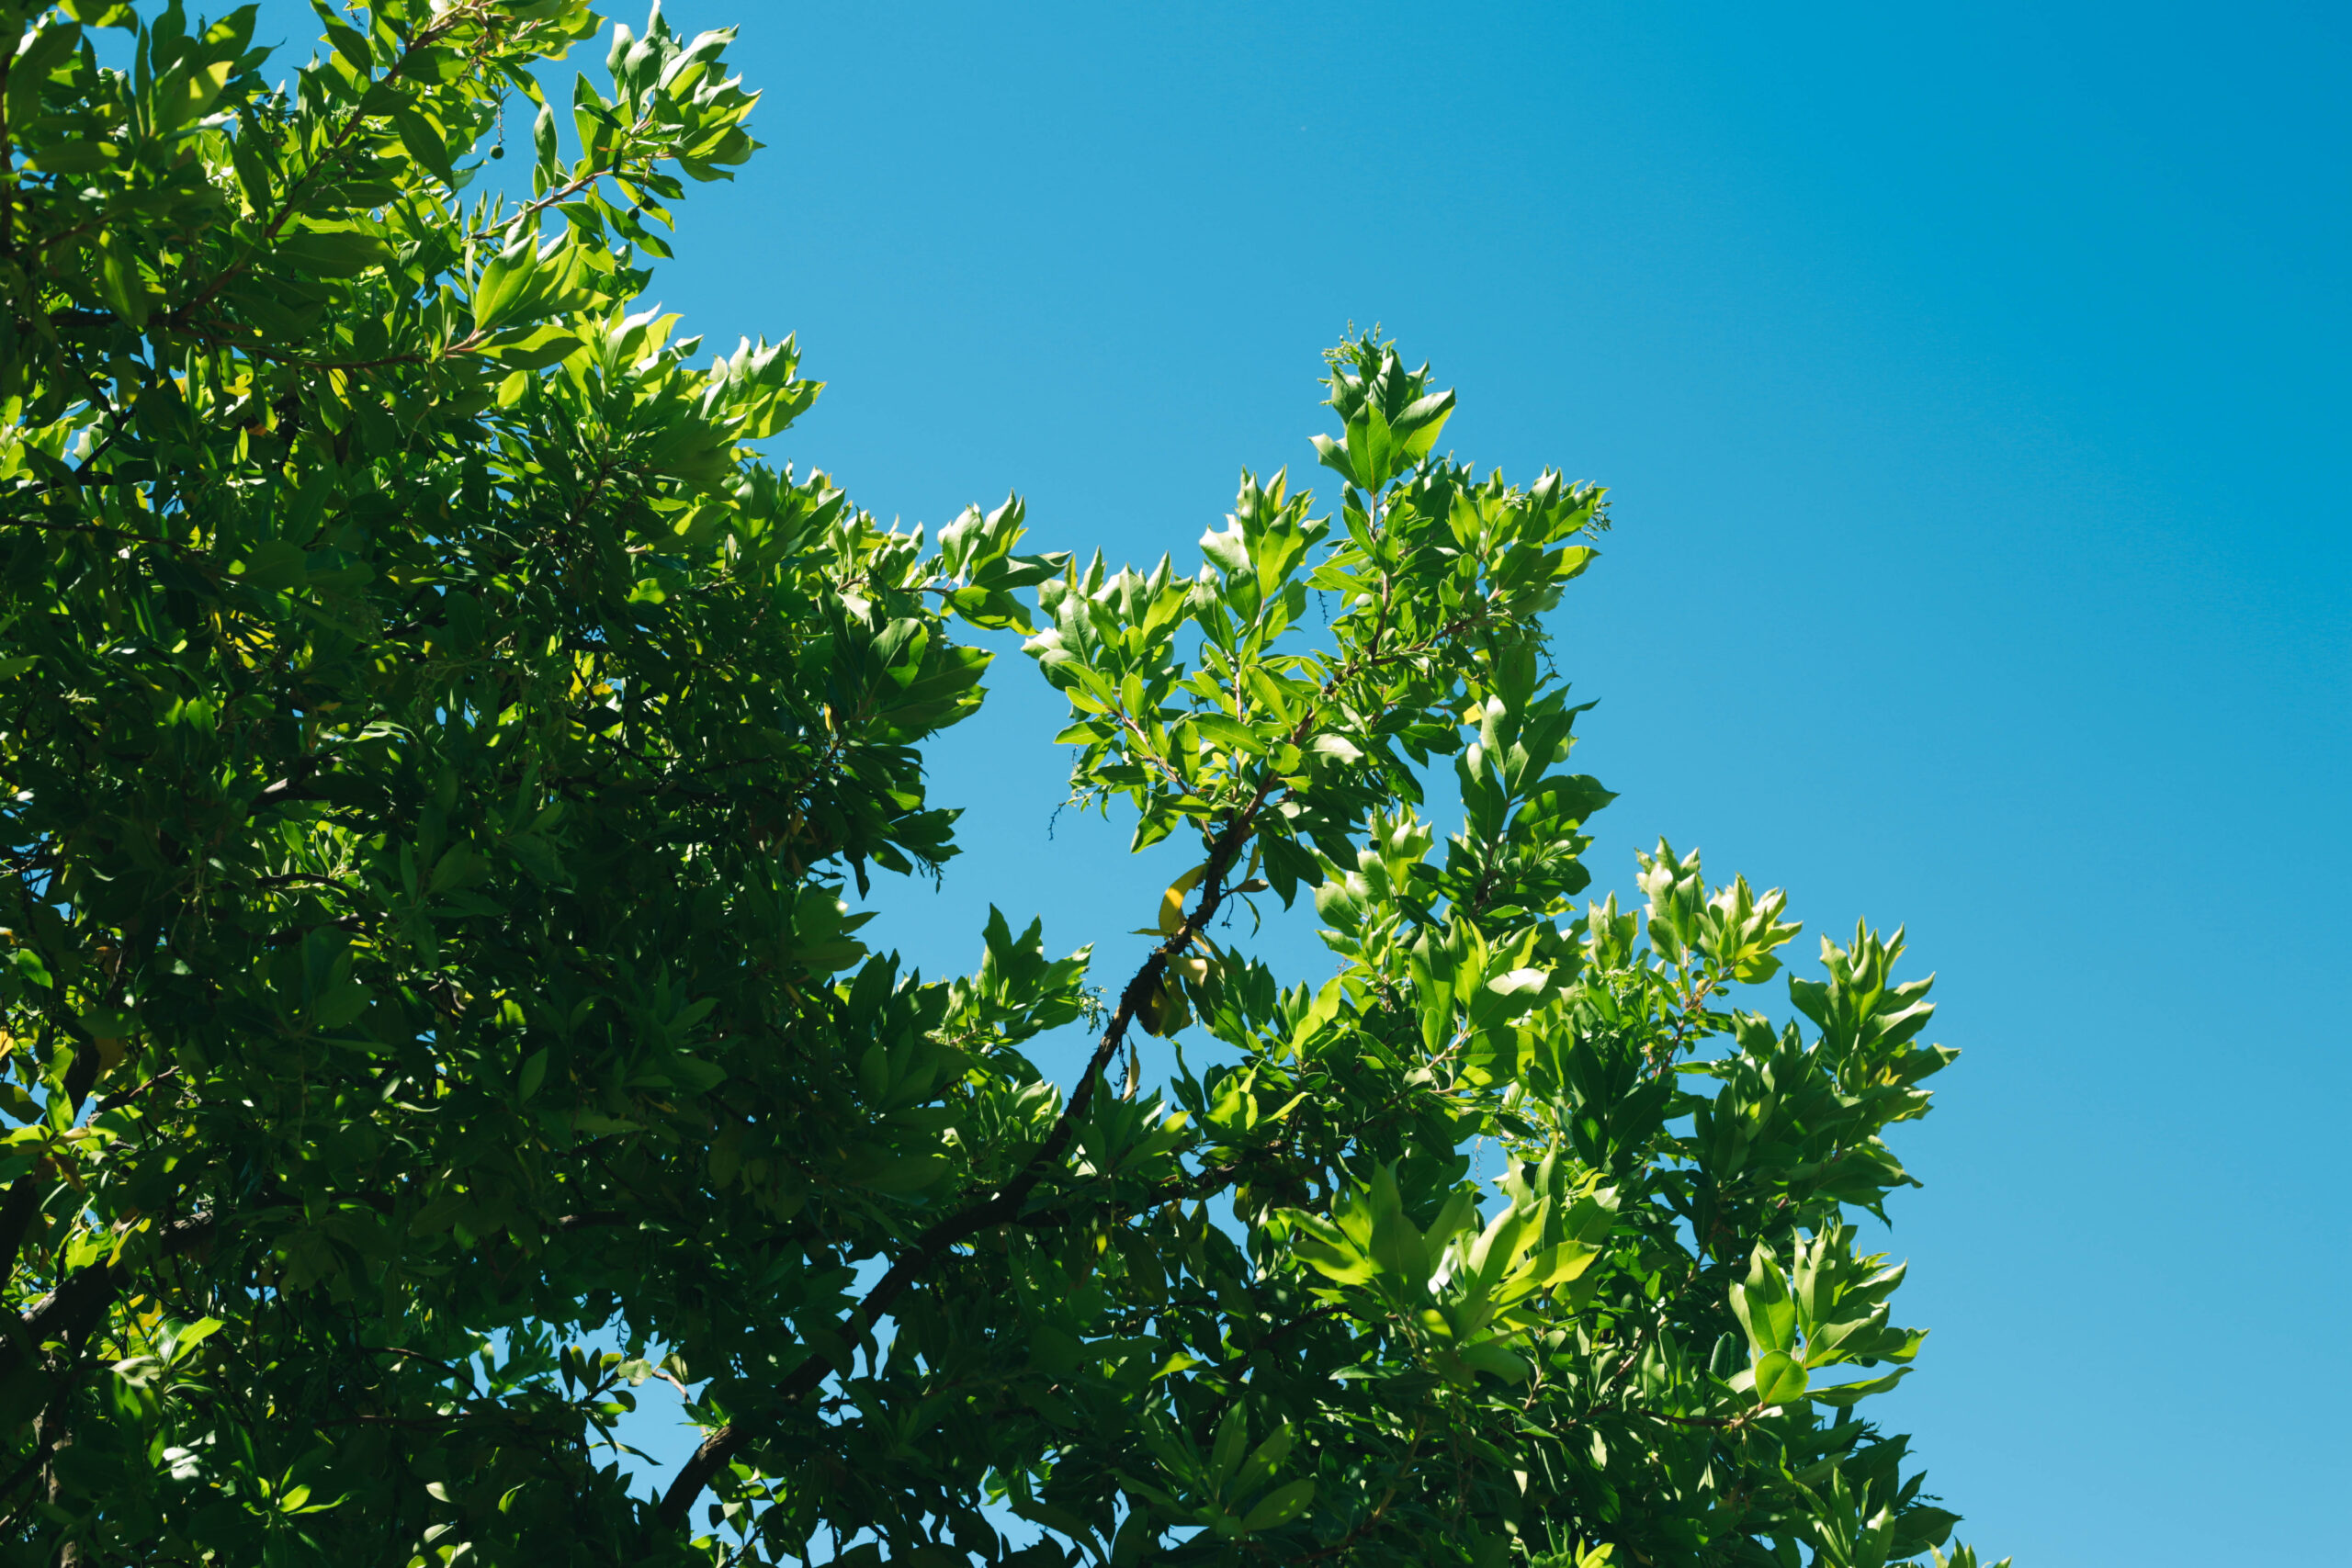 this is an image of fullerton pro tree services of tree trimming